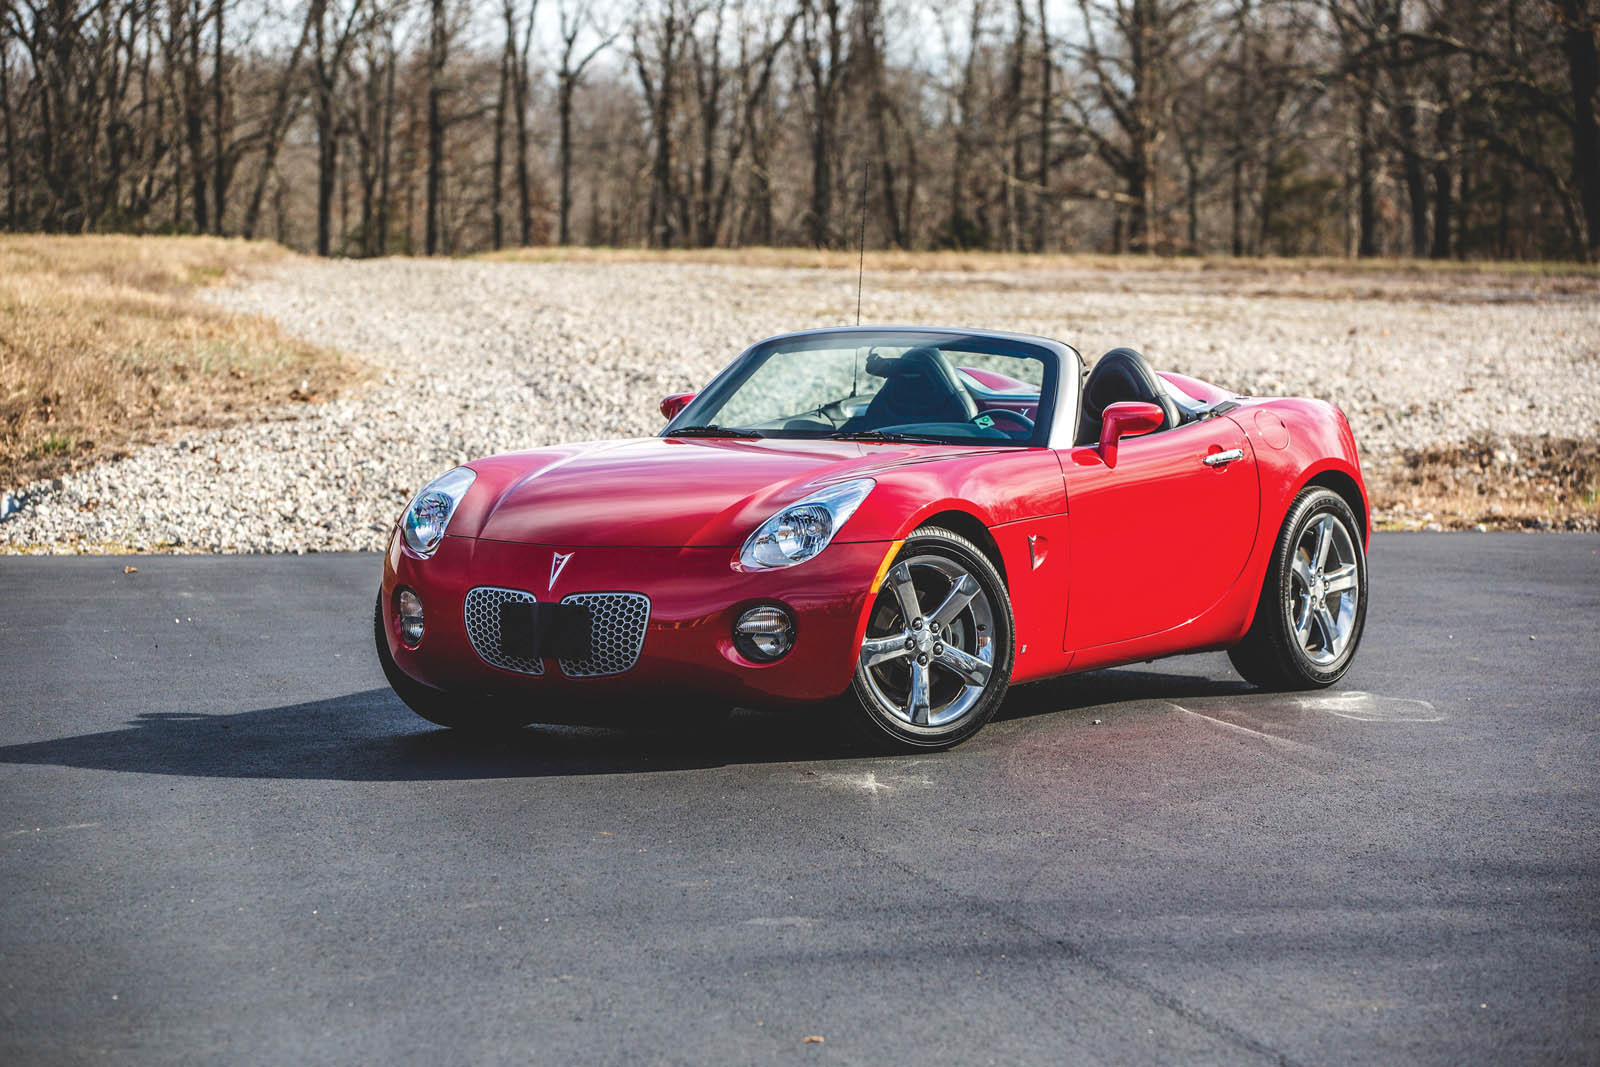 100 Hot Cars 187 Pontiac Solstice